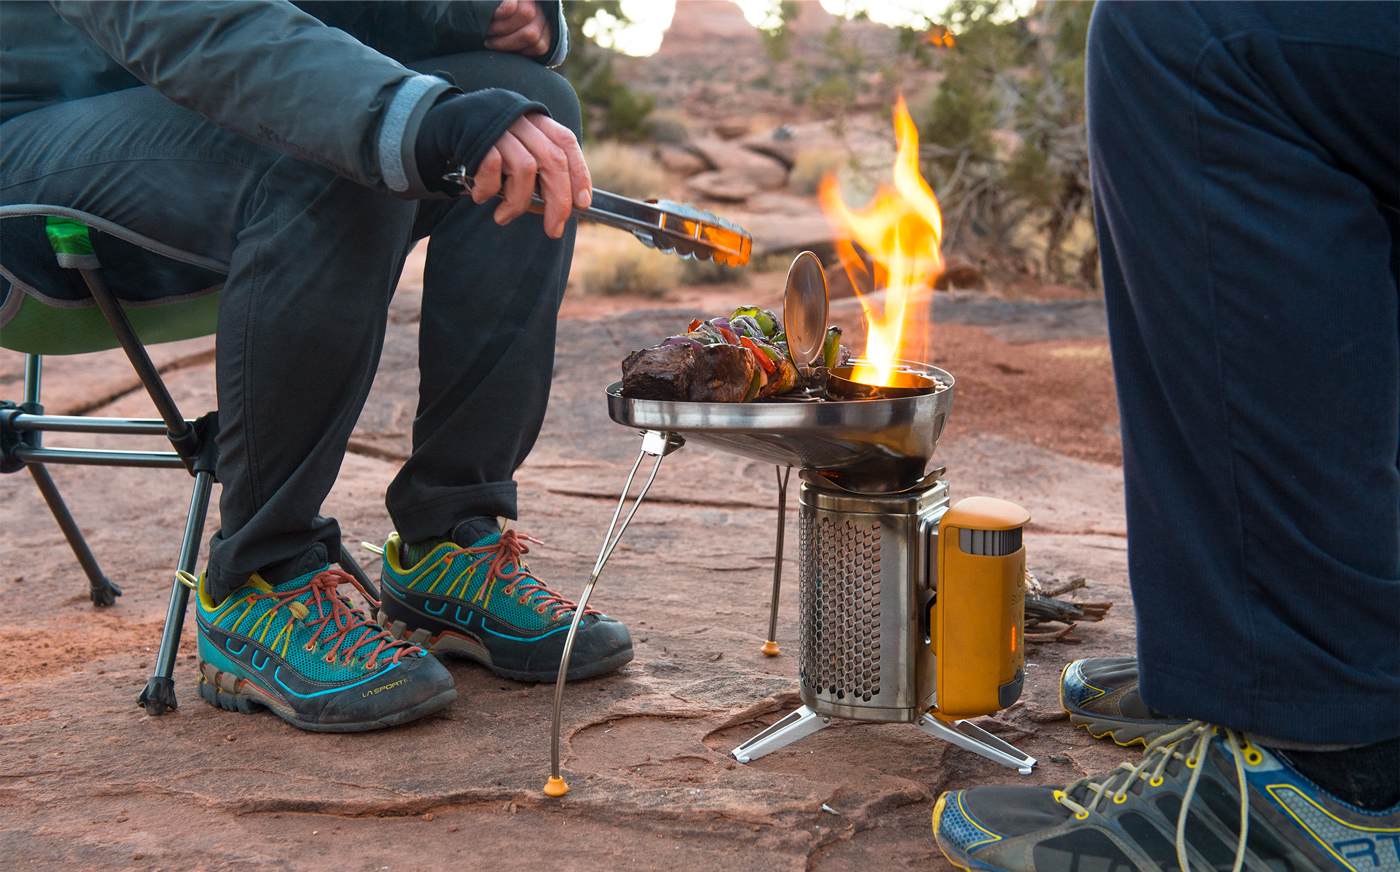 Camping and Cooking on the BioLite Stove